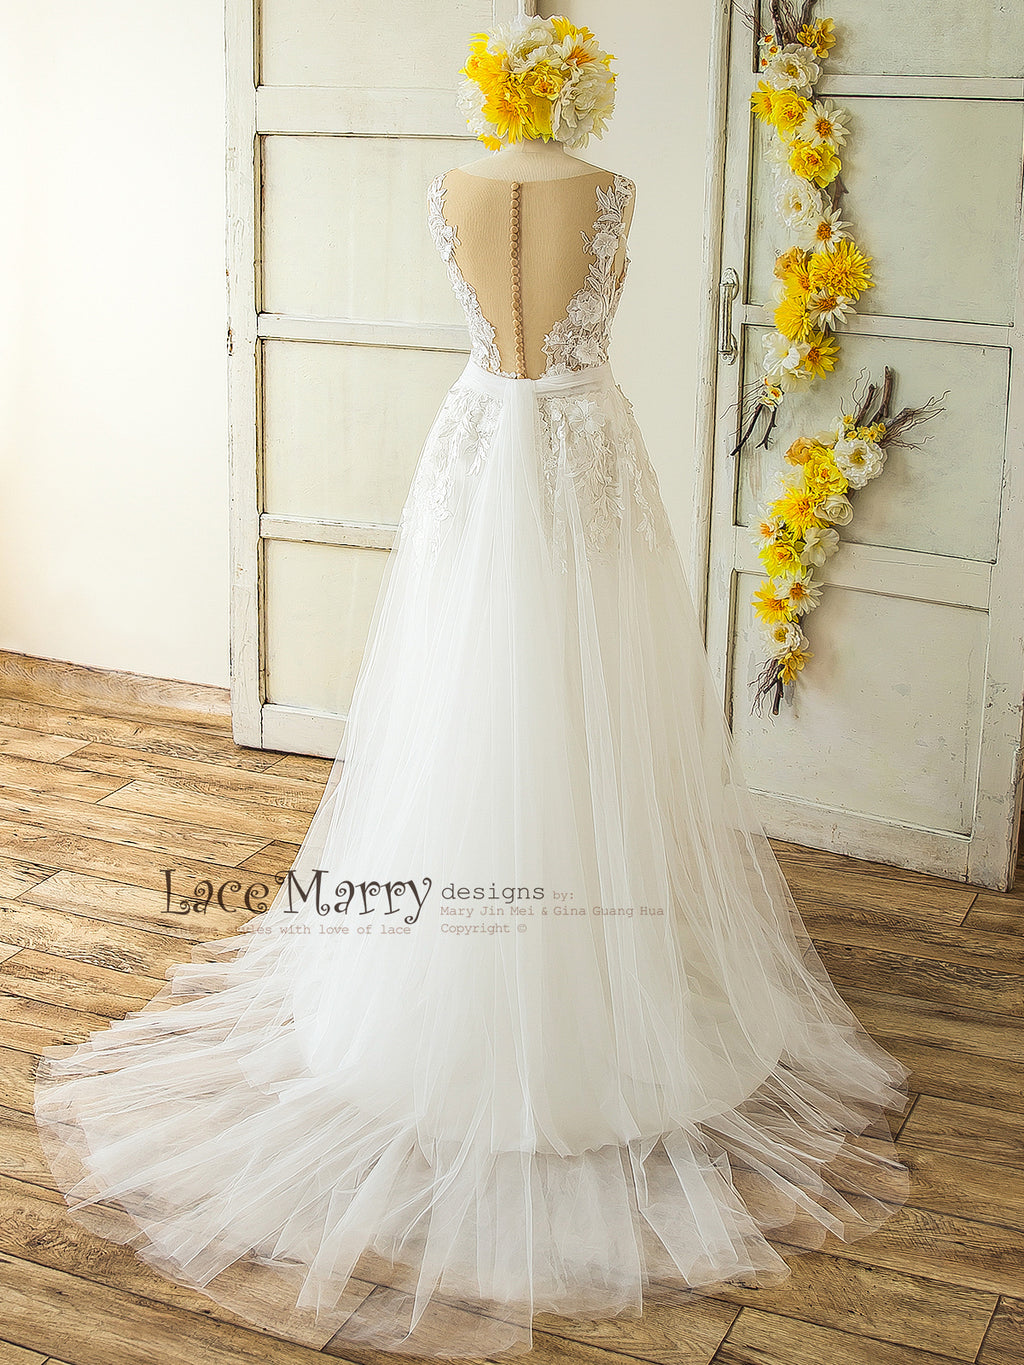 3D Lace Boho Wedding Dress